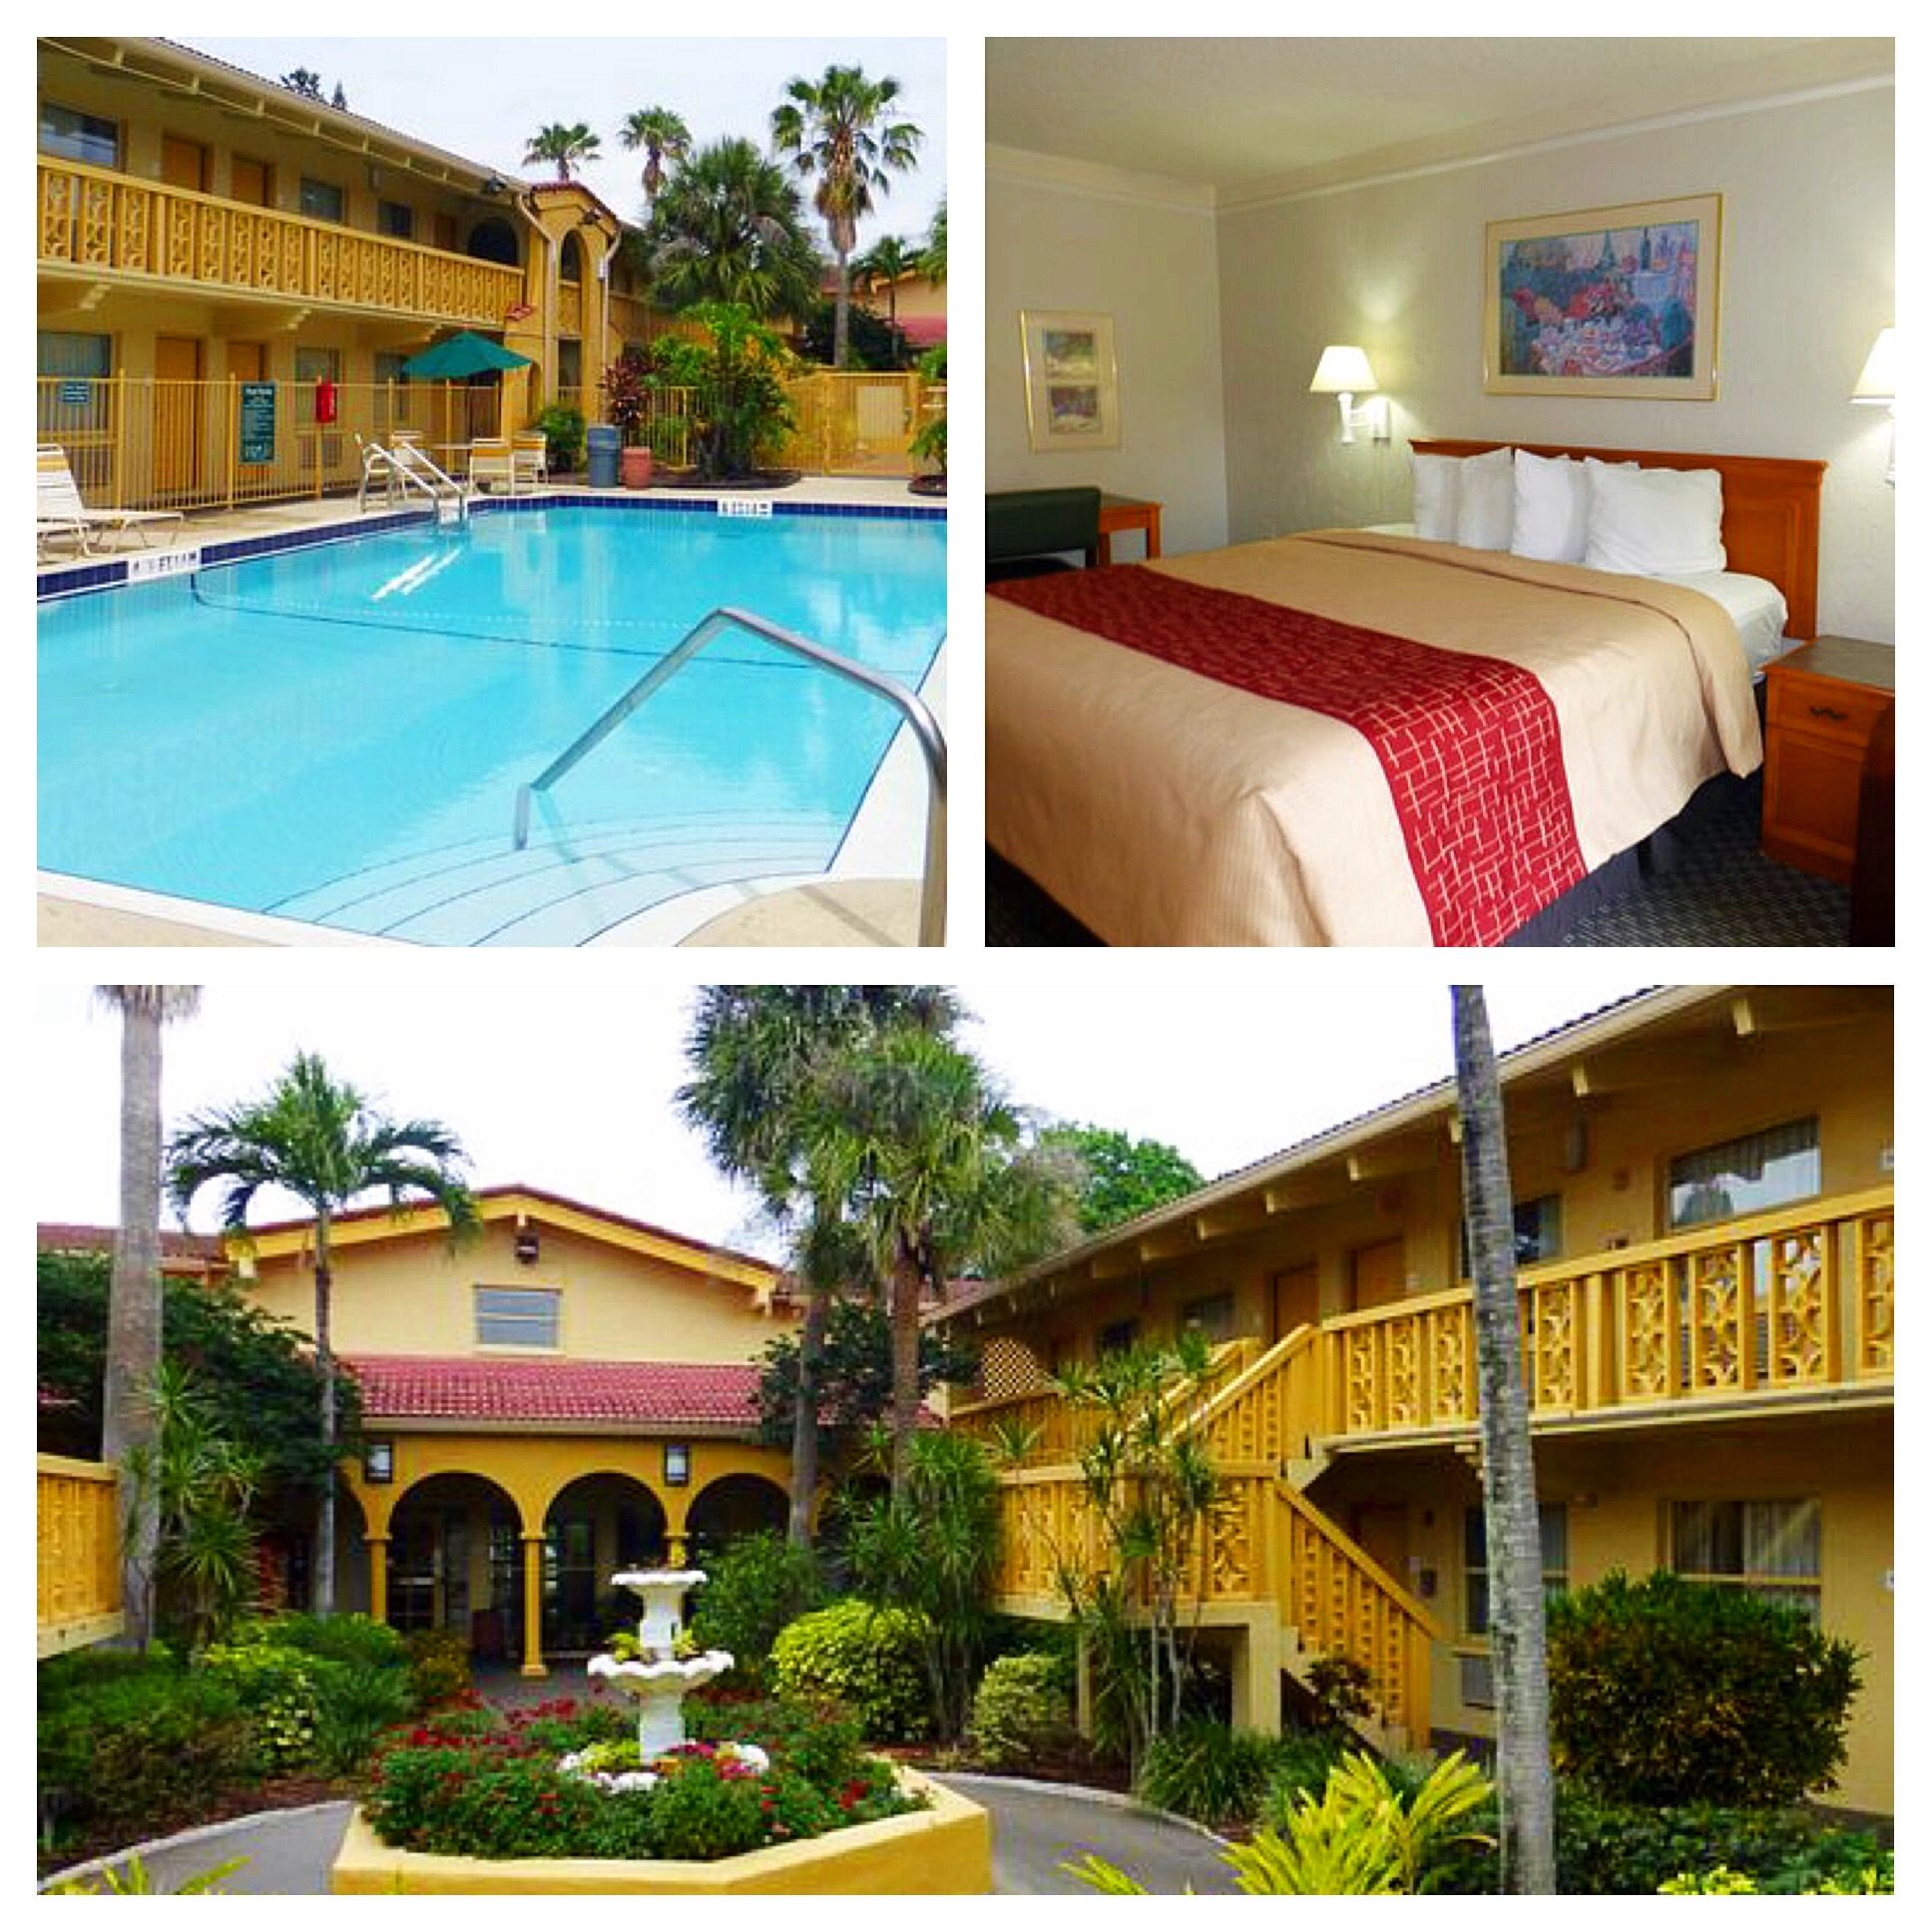 Budget, Pet Friendly Hotel in Saint Petersburg, FL 33714